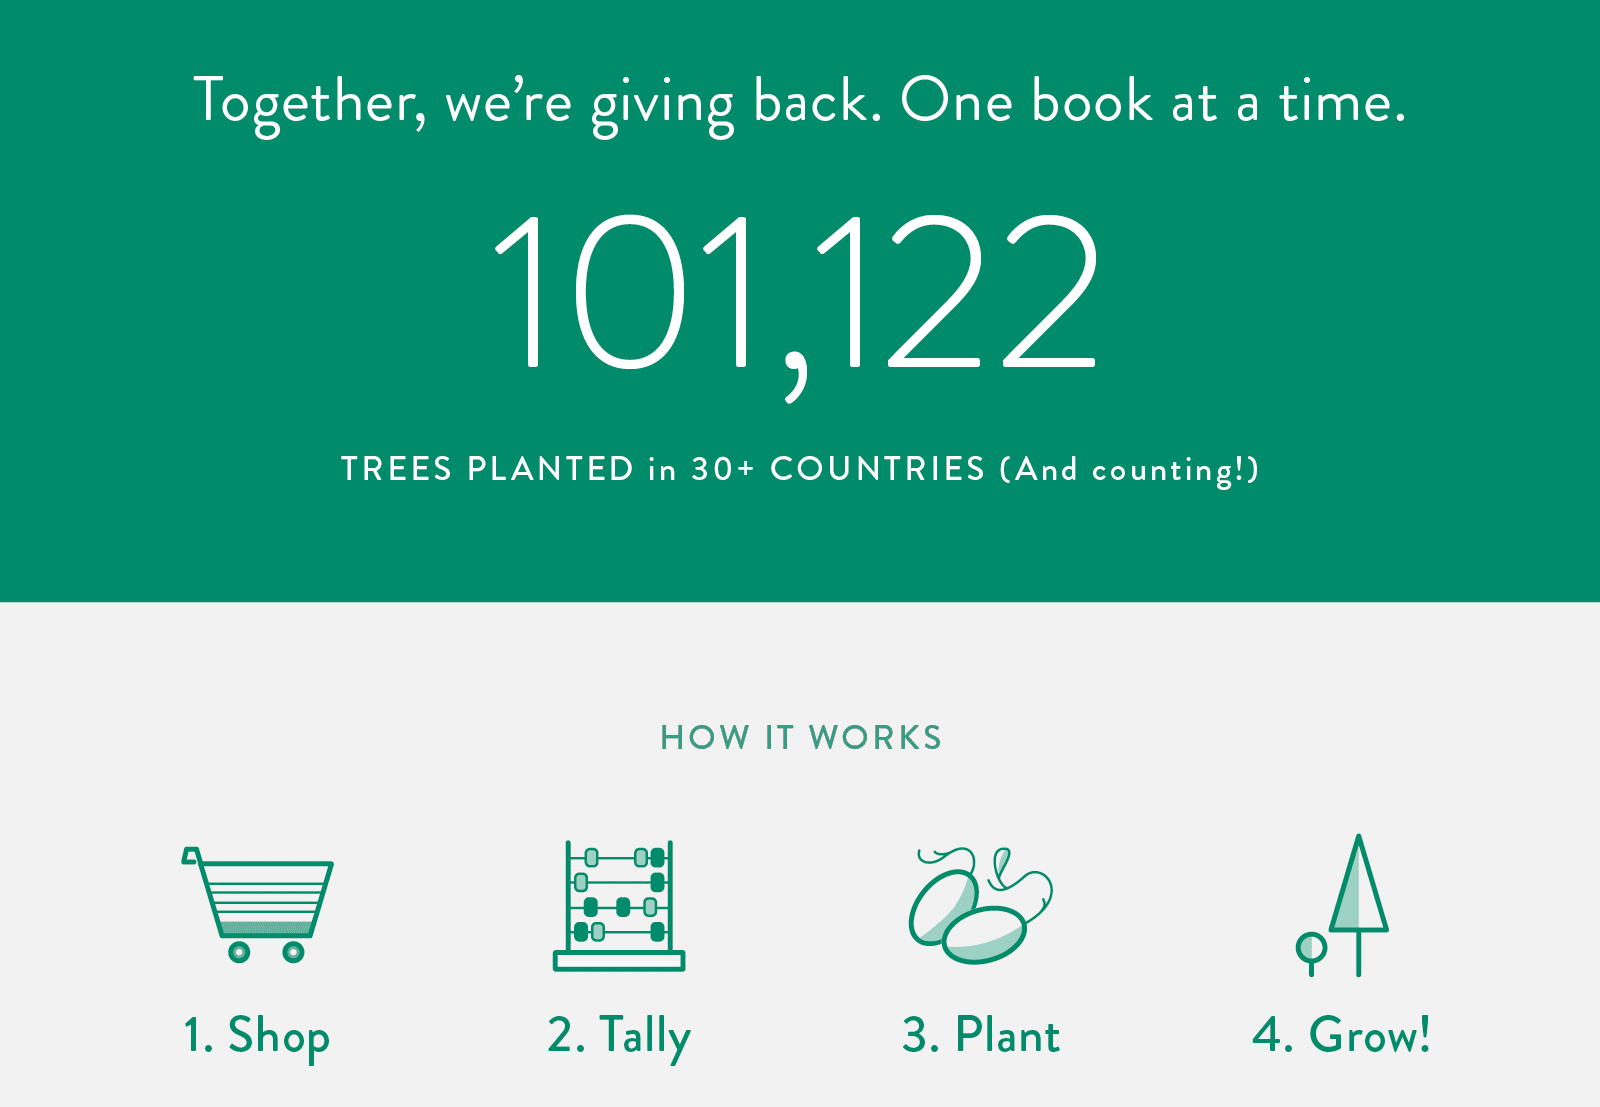 Together, we're giving back. One book at a time.